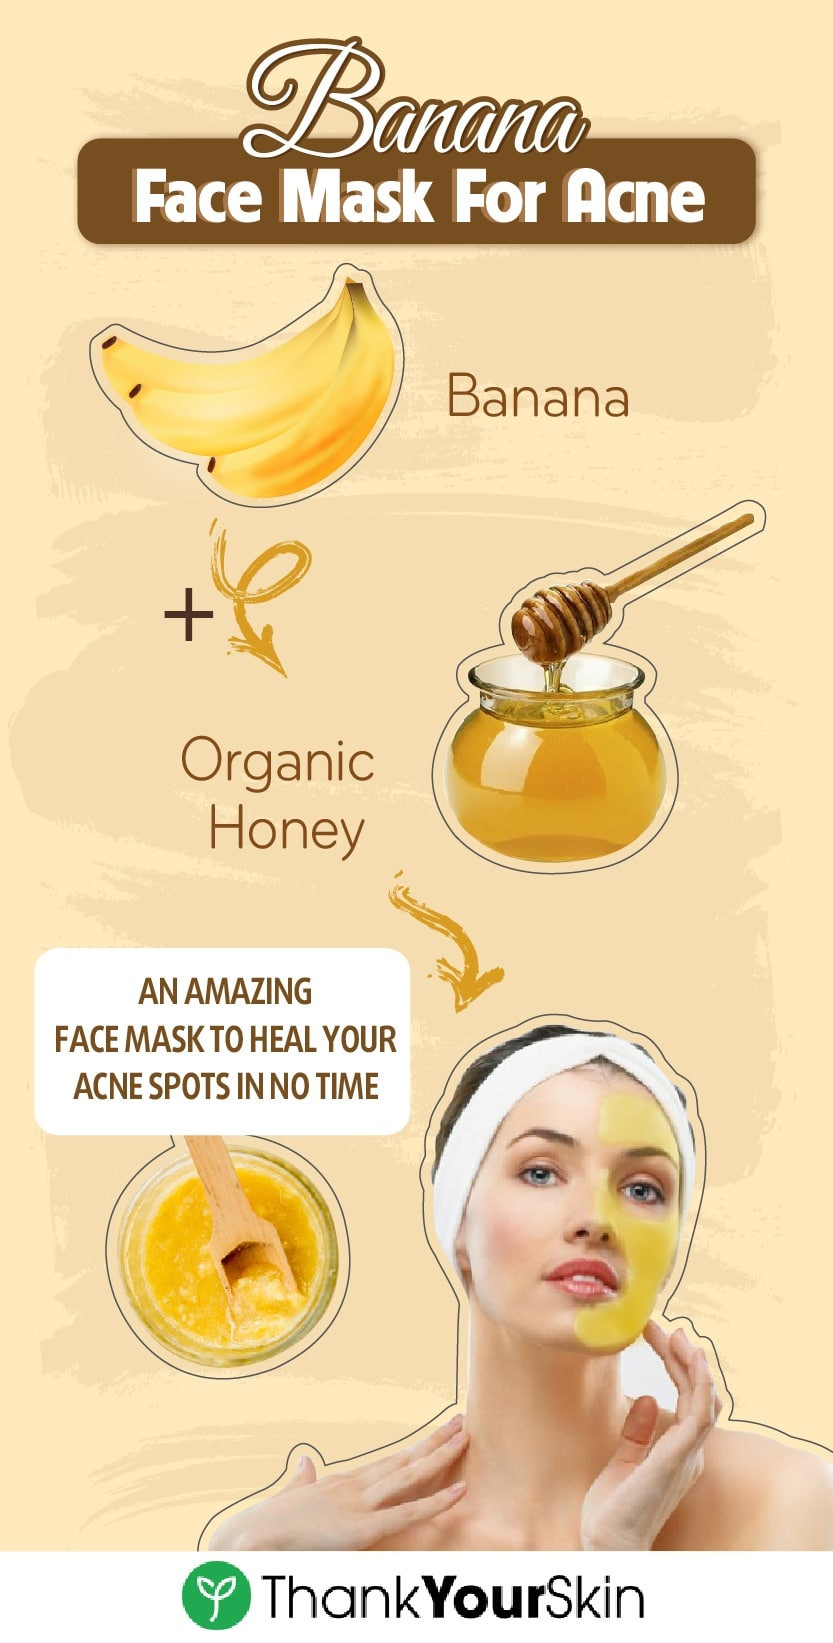 Best ideas about DIY Face Masks For Acne . Save or Pin 23 Homemade Face Masks For Acne That Actually Work Now.